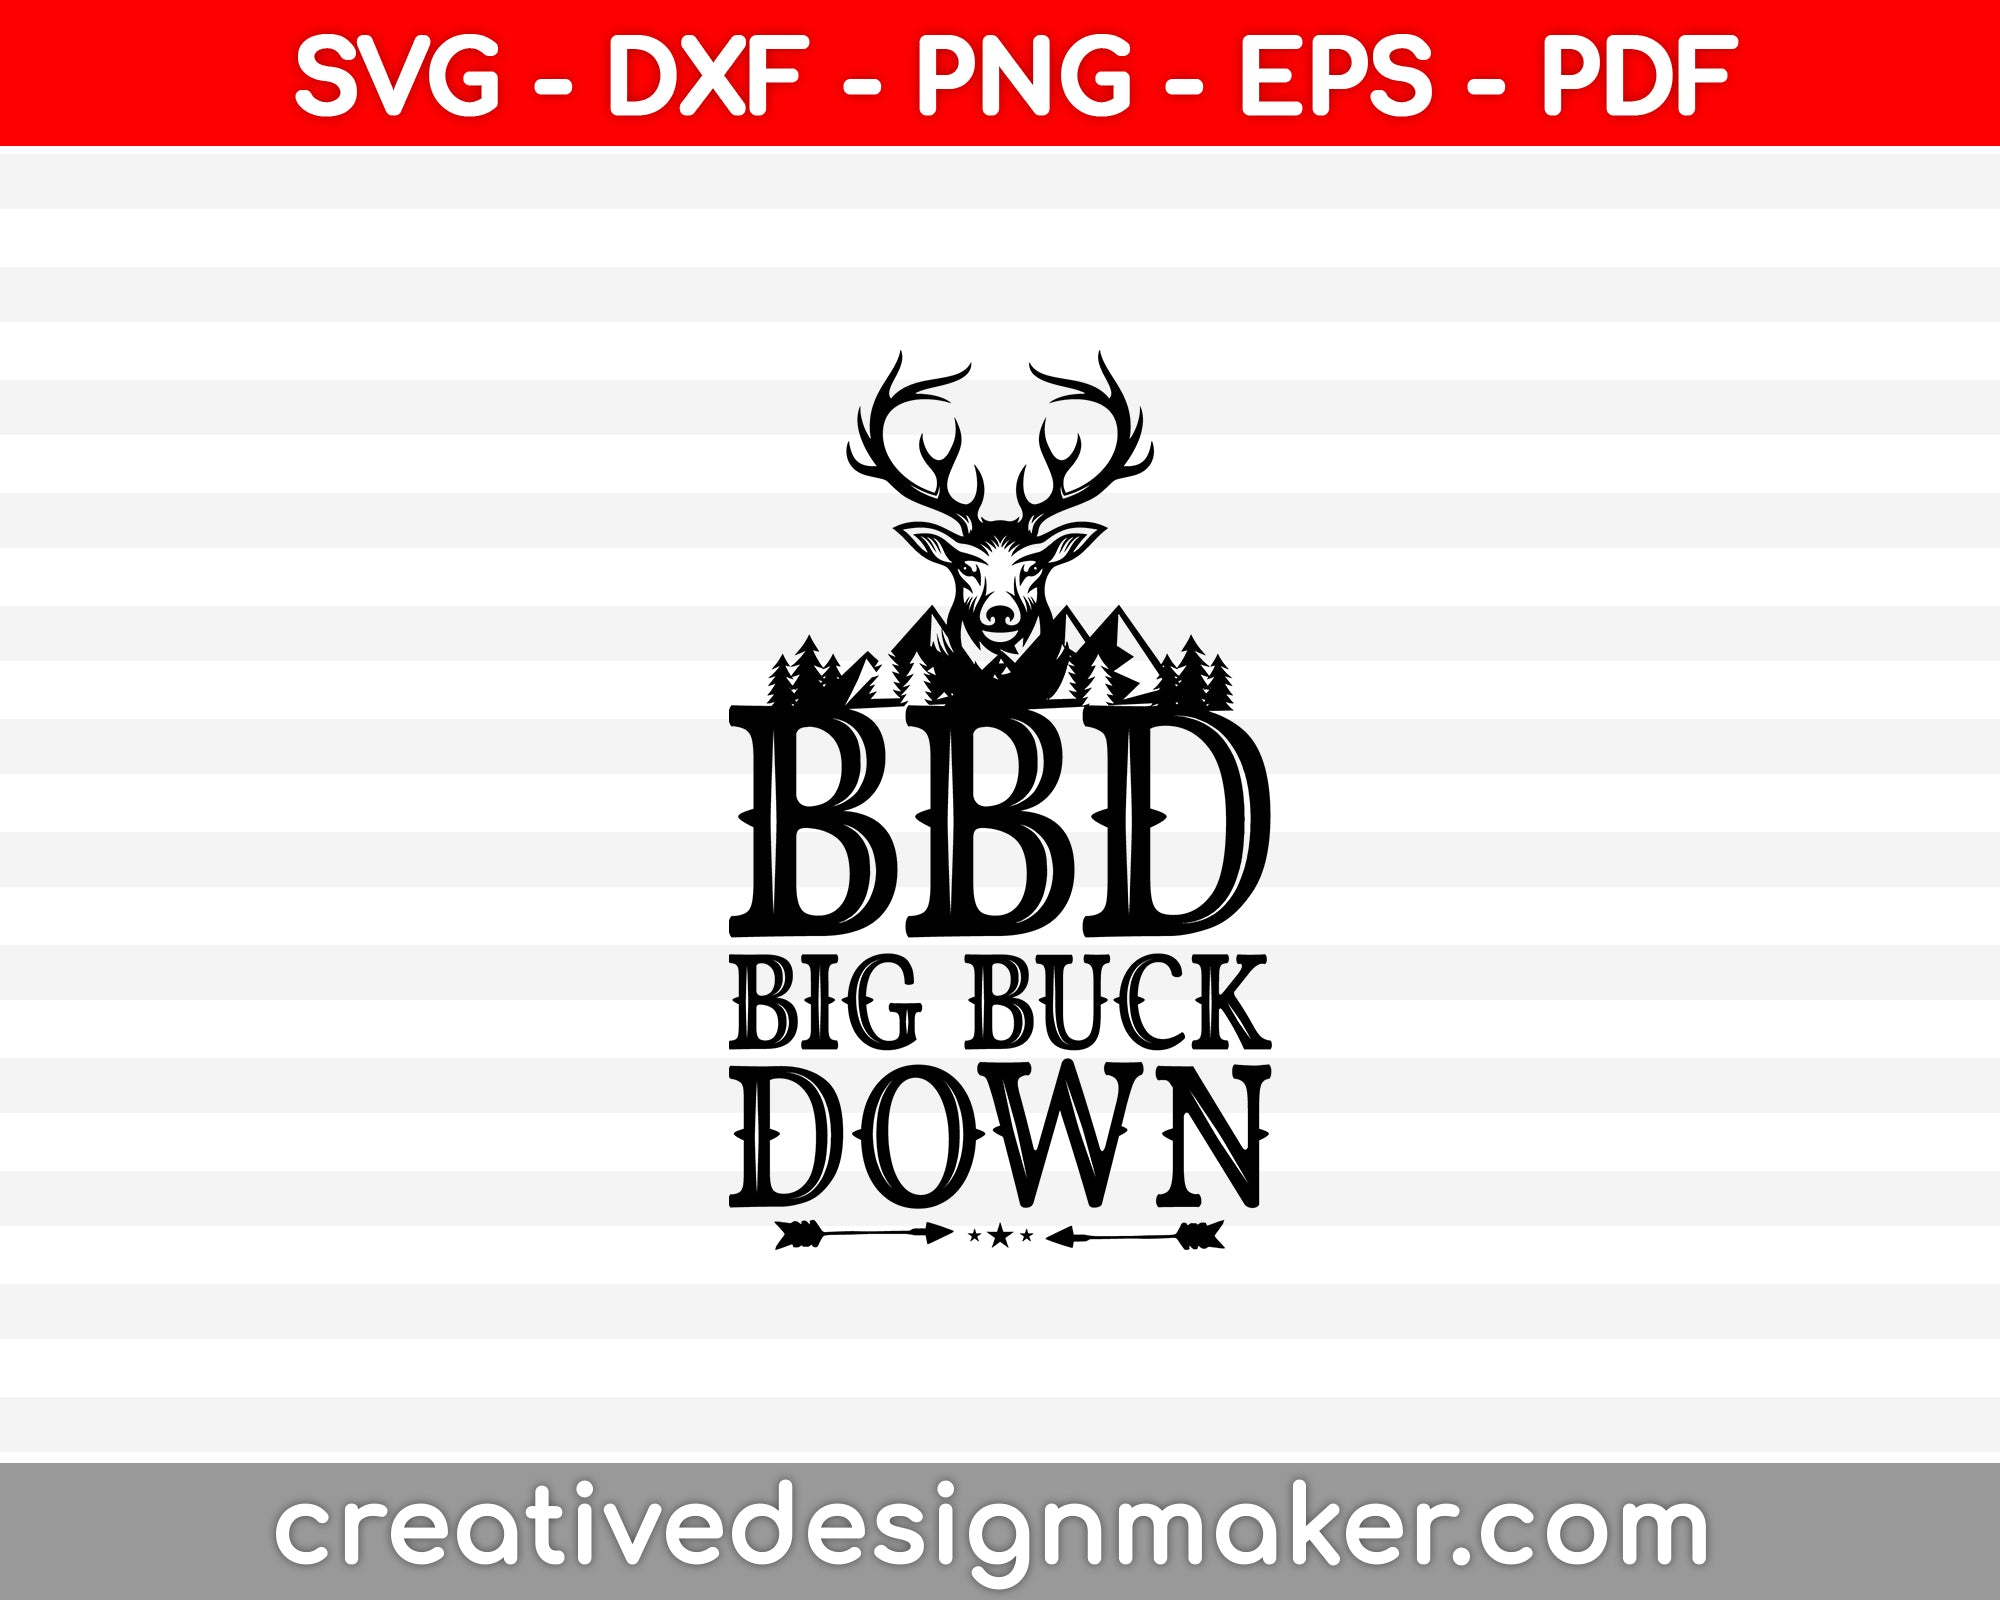 Deer Hunting Gear And Deer Hunting Gifts SVG PNG Cutting Printable Files